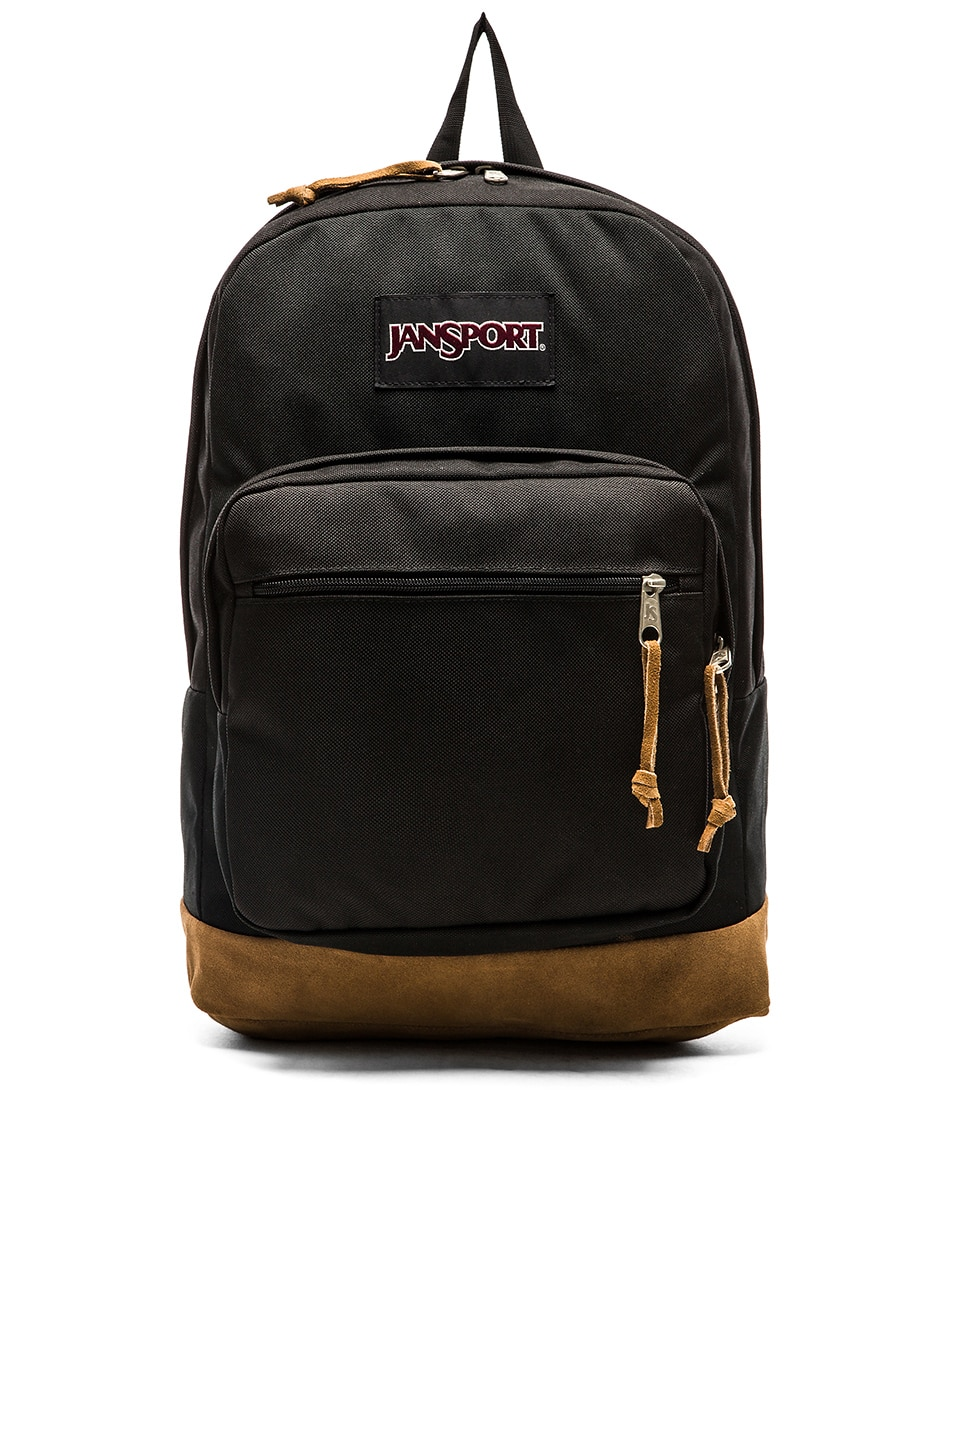 Jansport Right Pack Backpack in Black